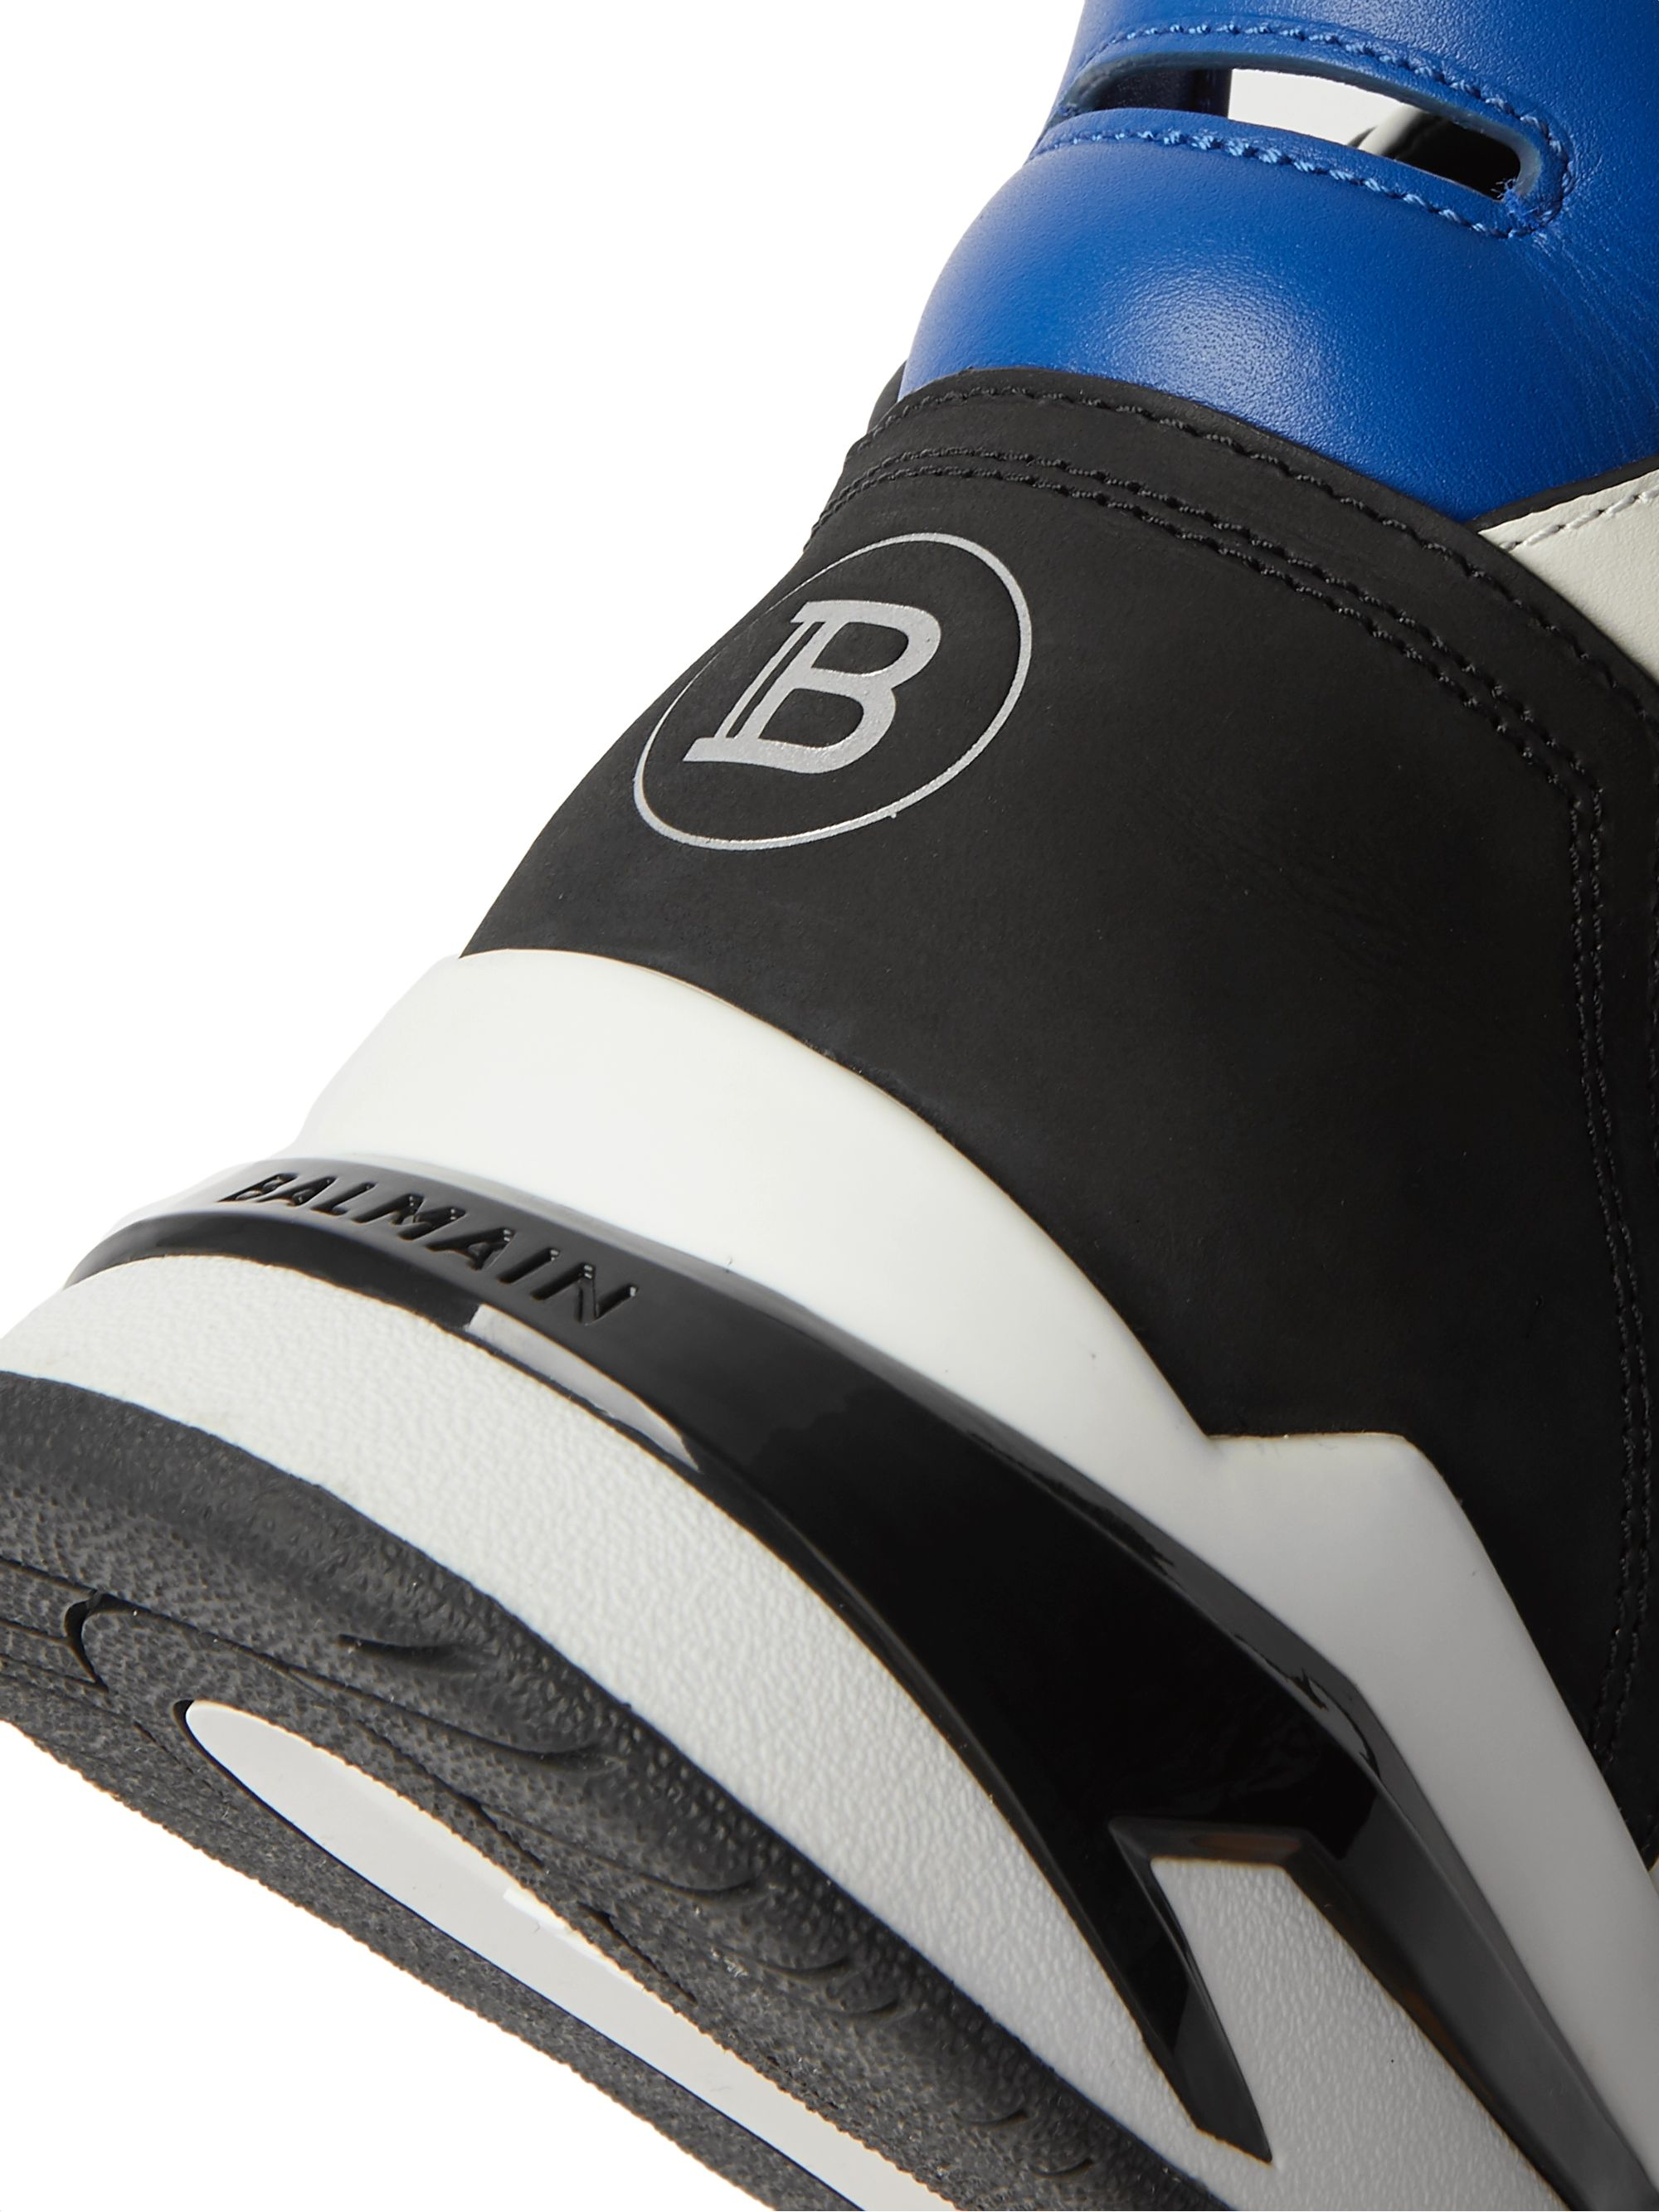 Balmain B-Ball Leather Sneakers